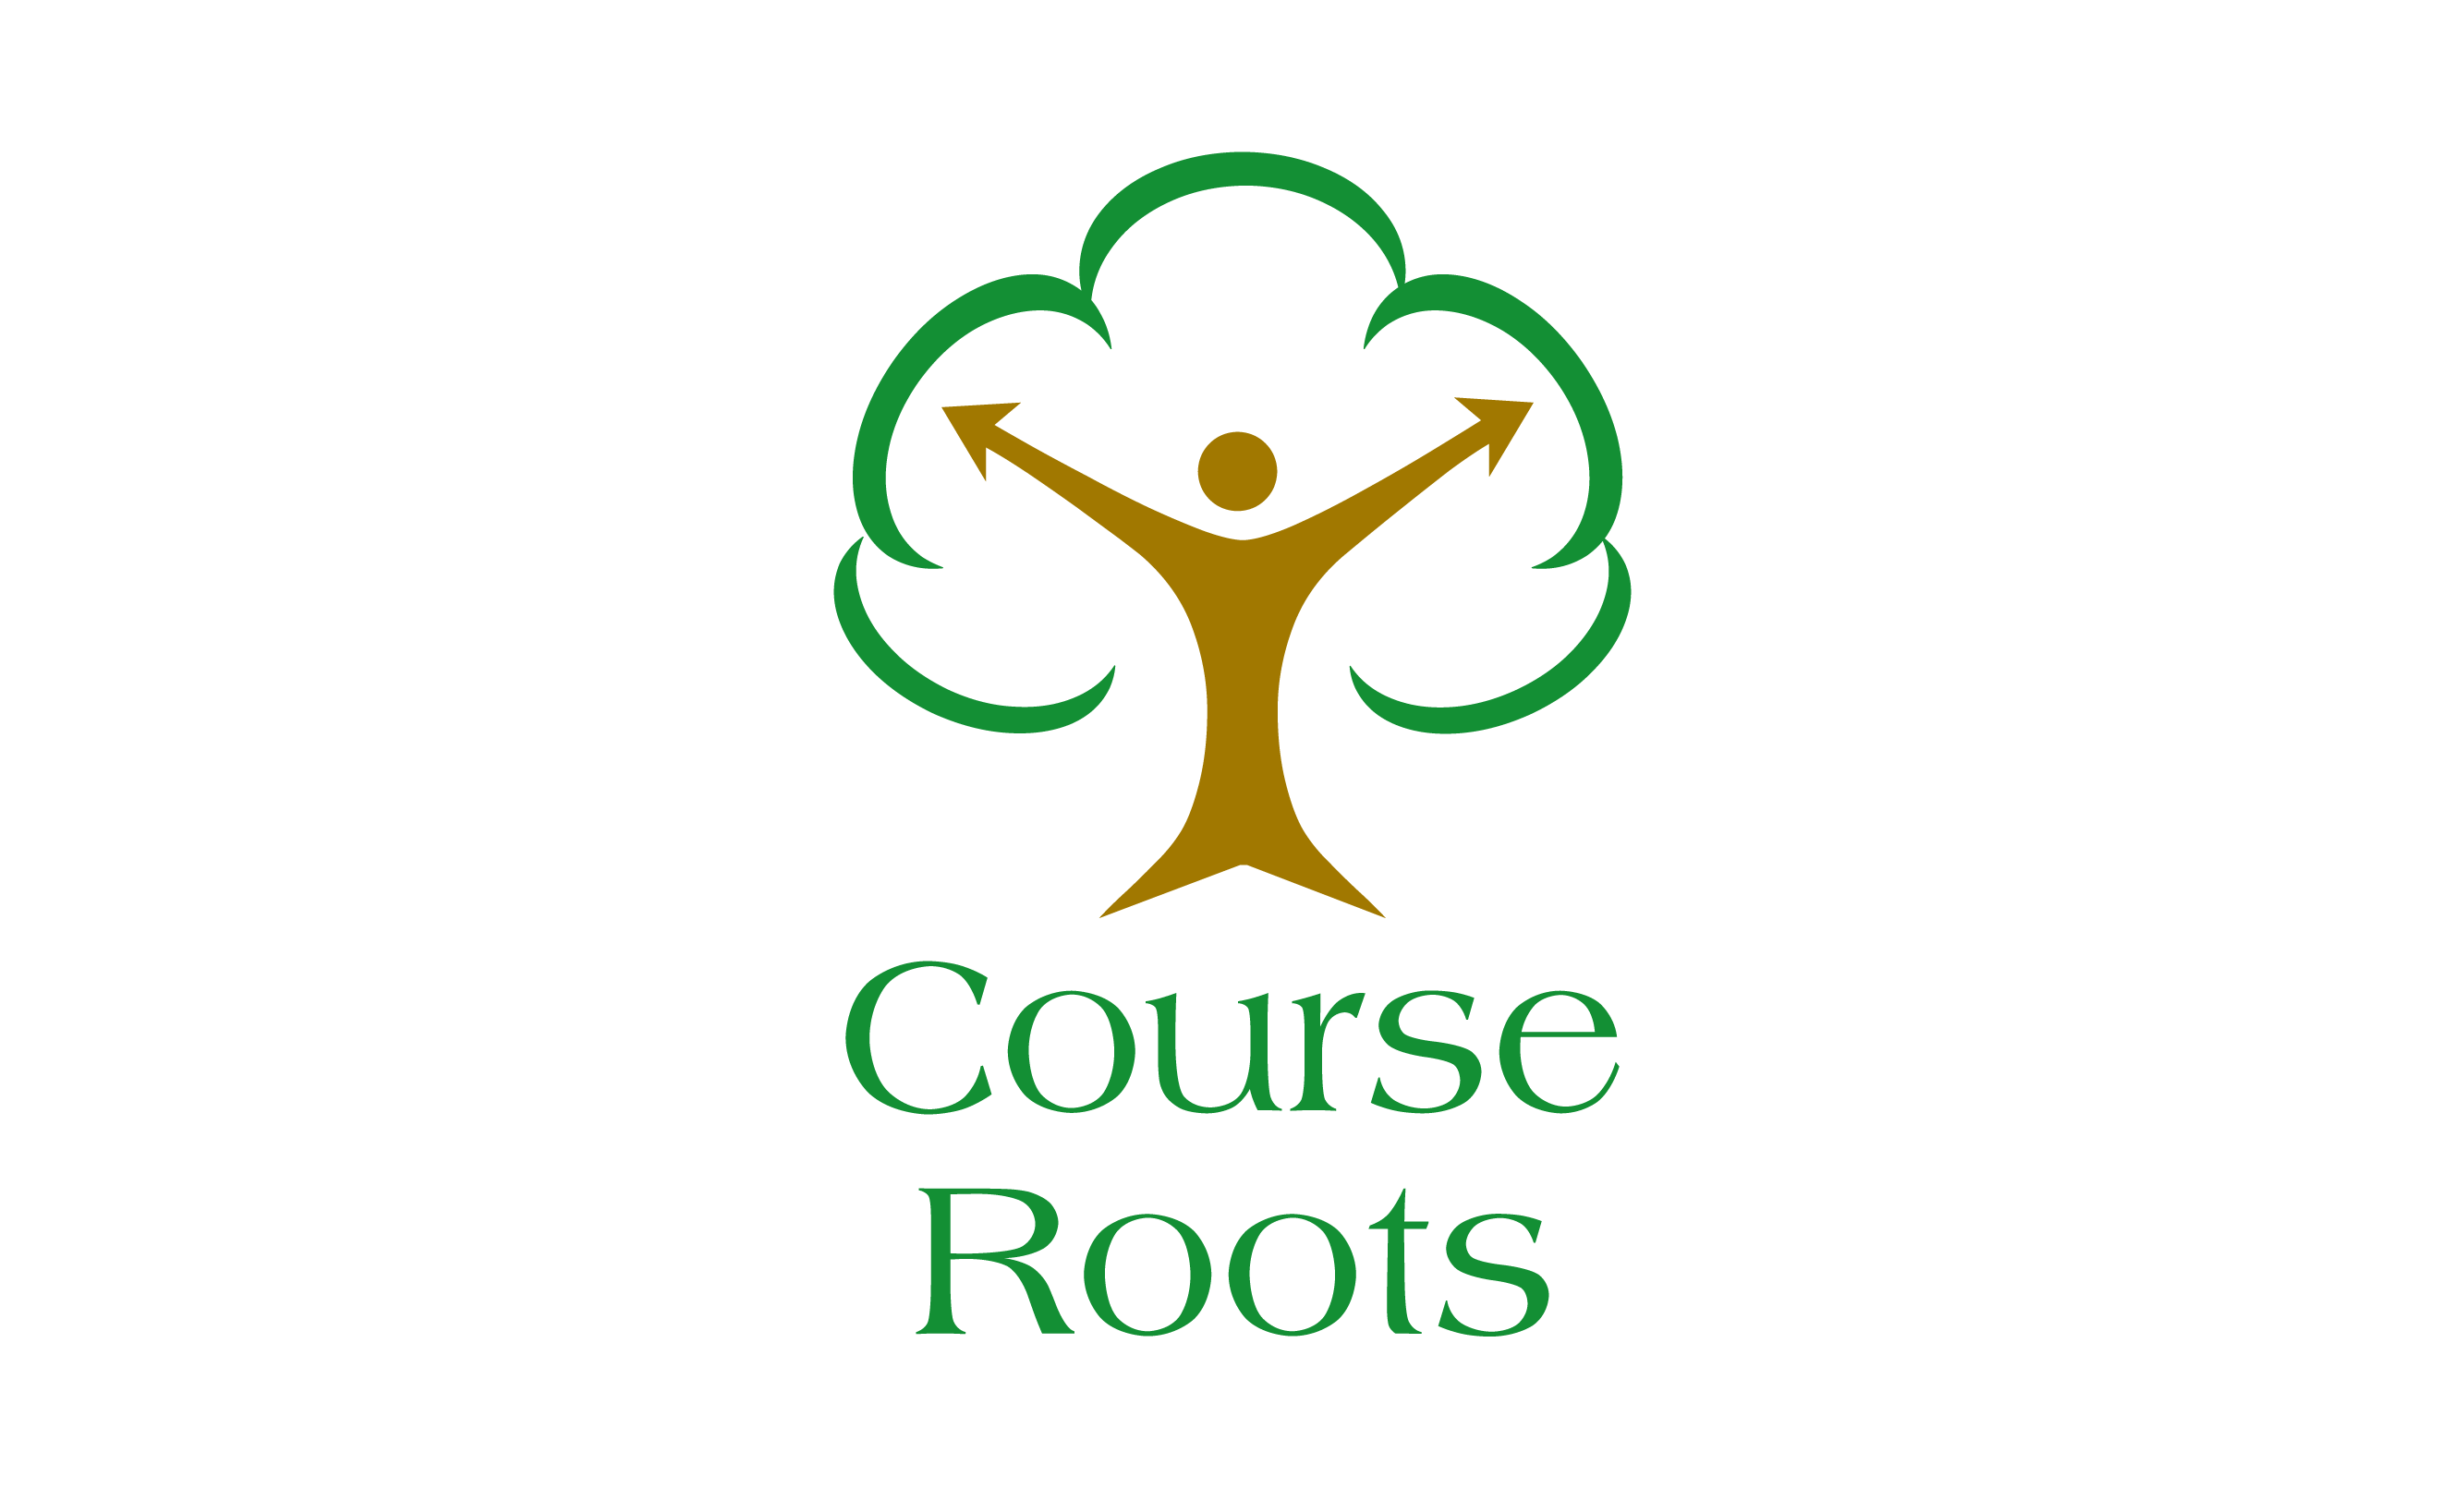 Course Roots